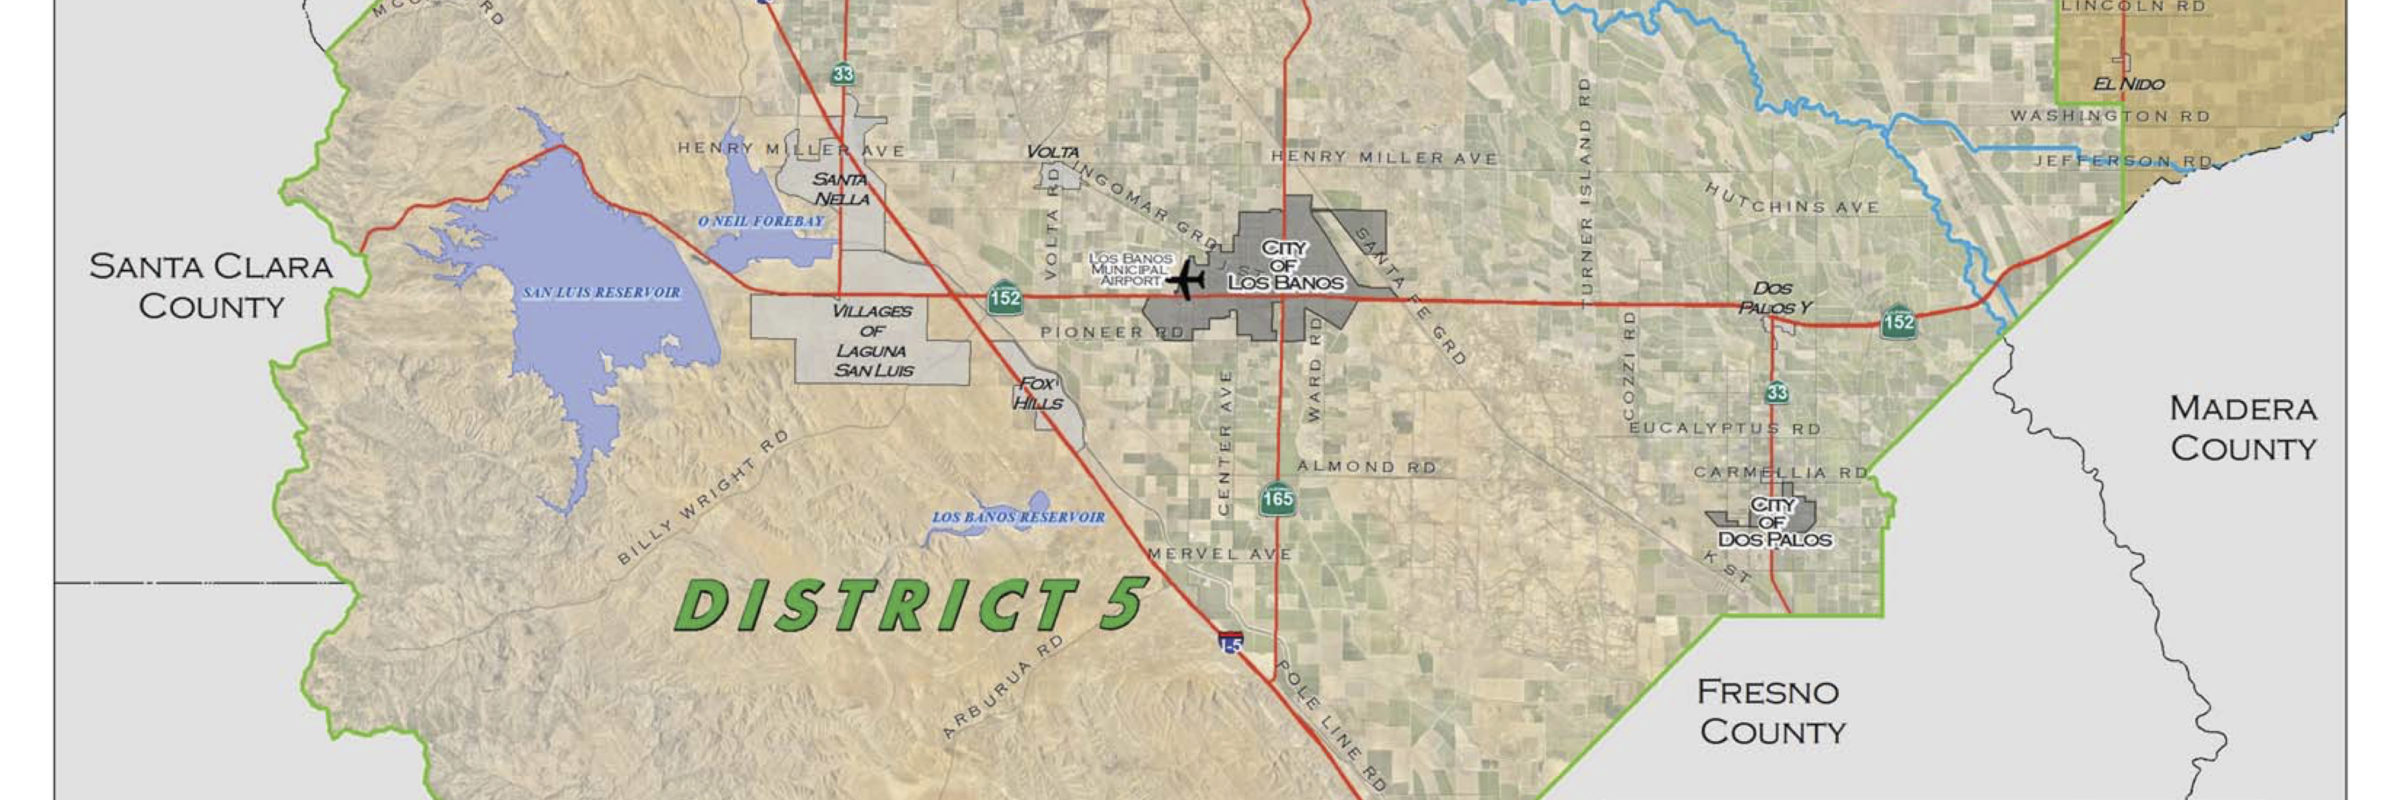 Silveira Map District 5